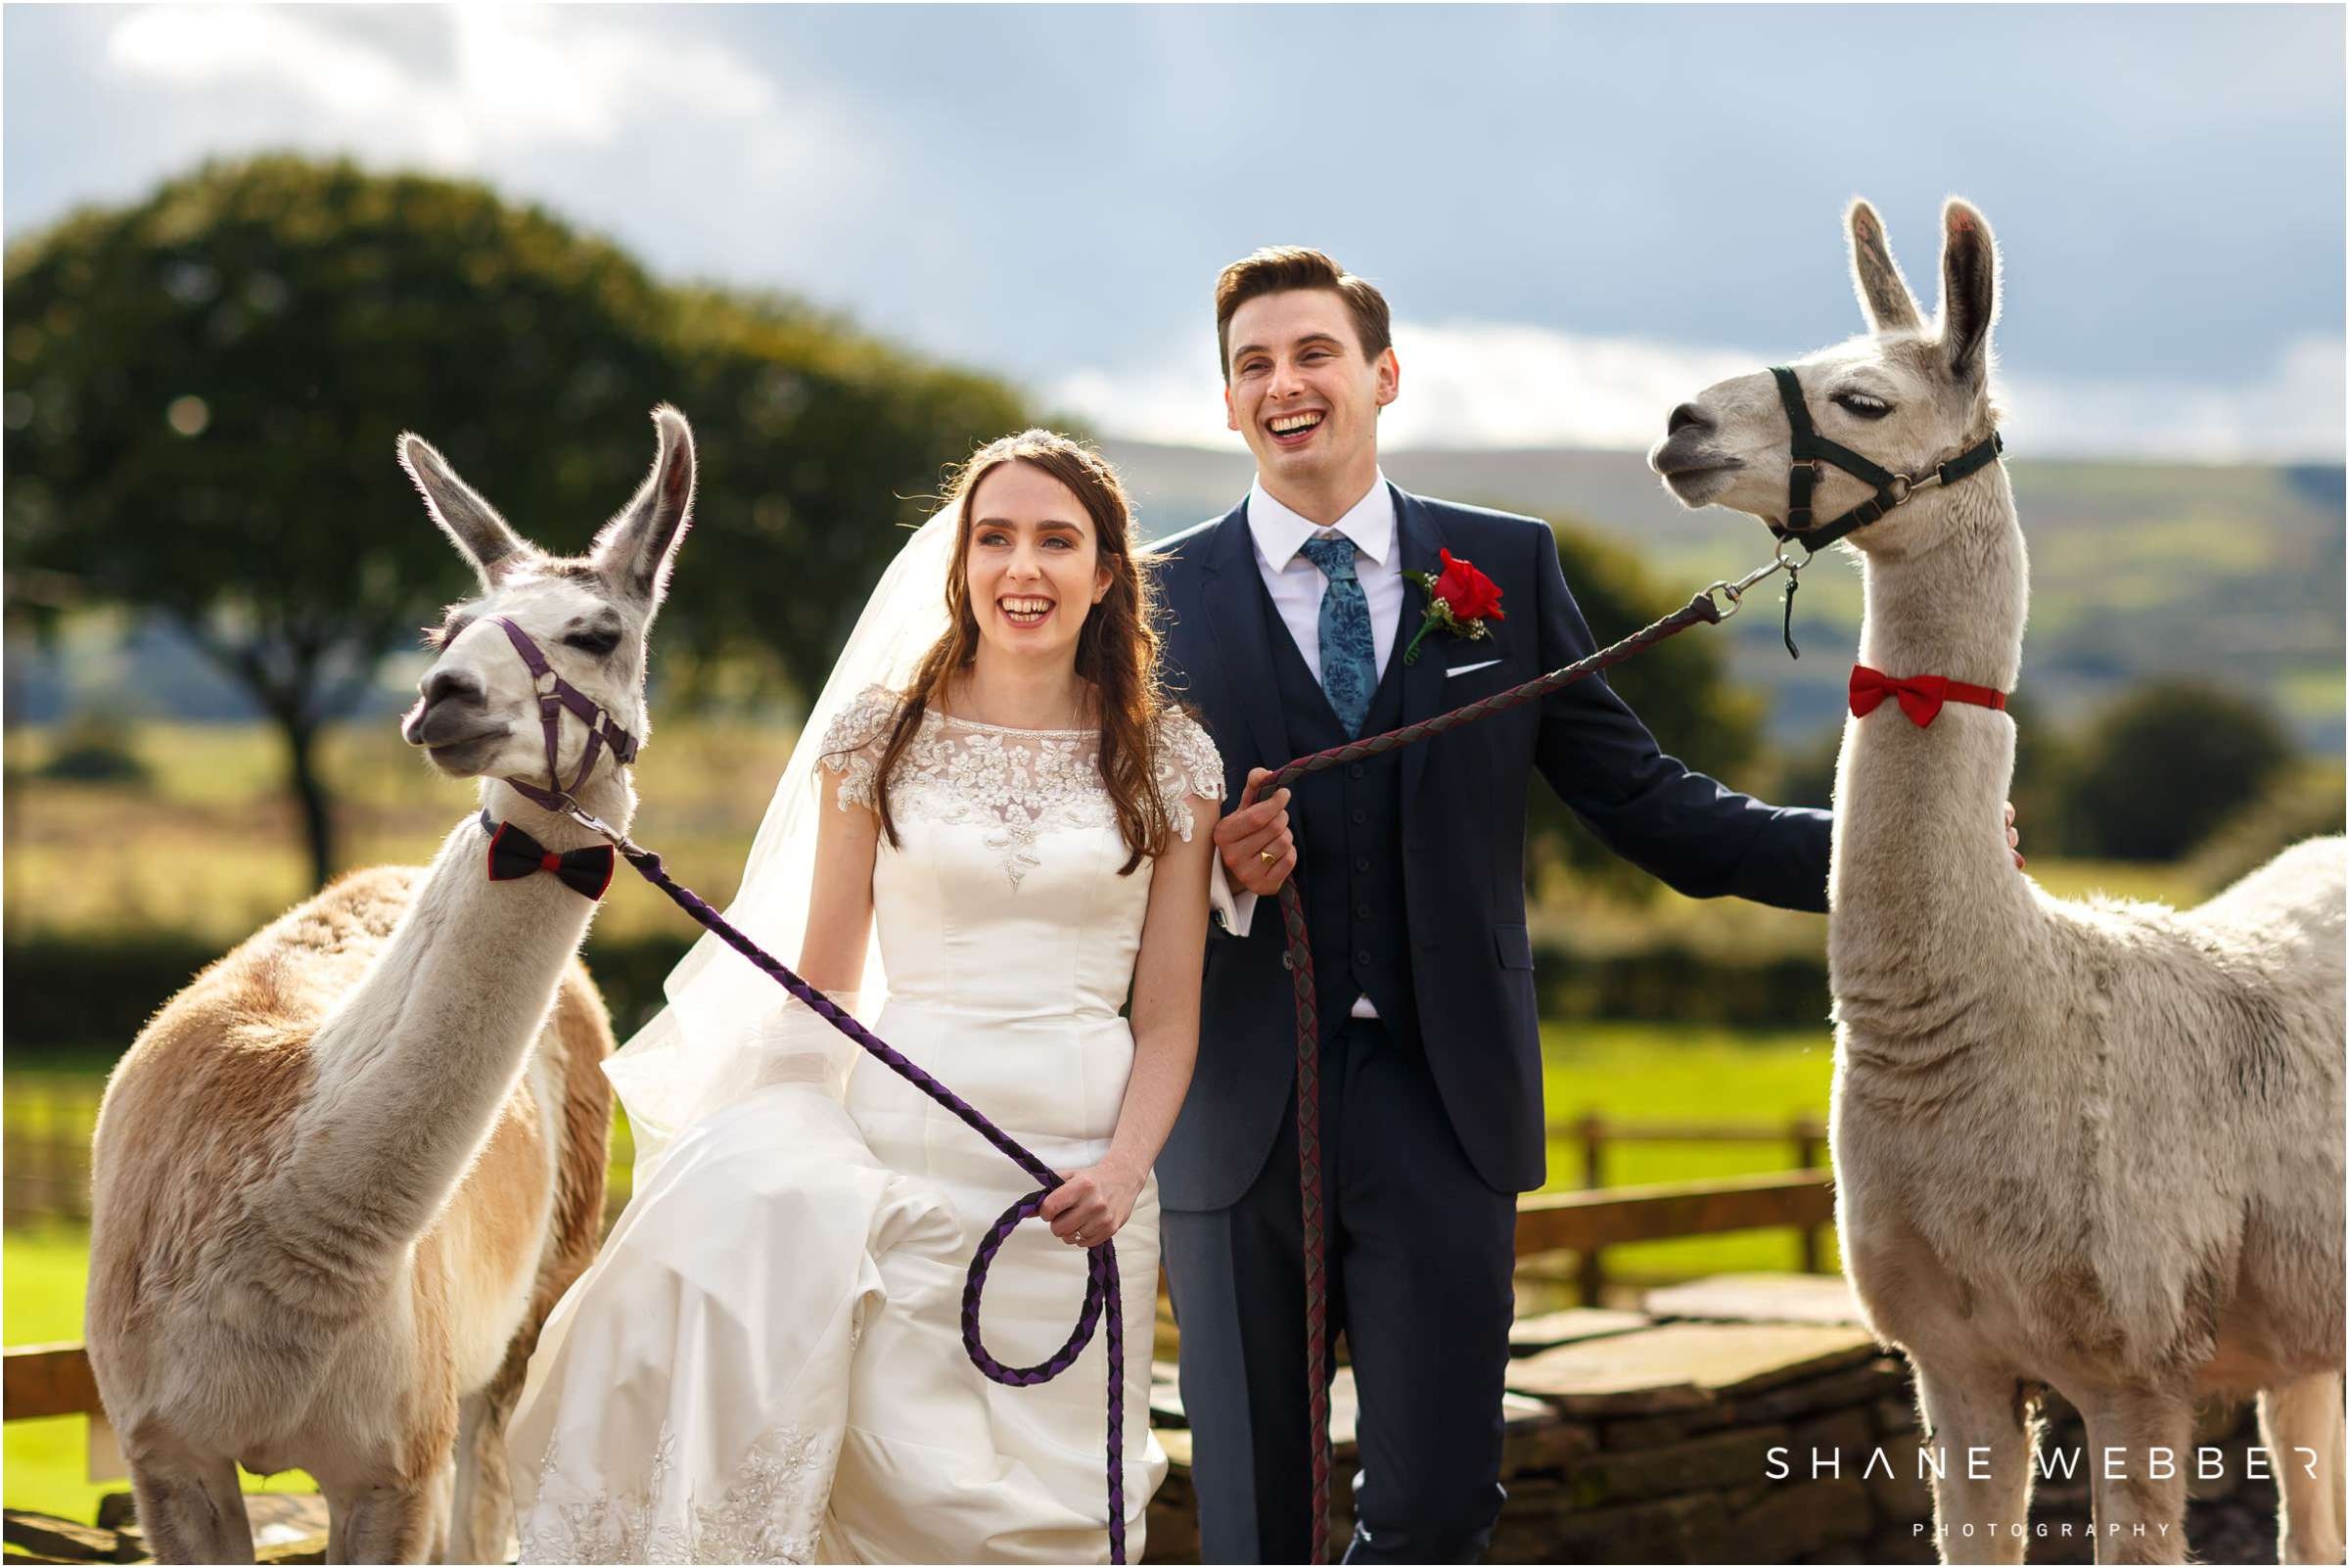 wellbeing farm summer wedding photography